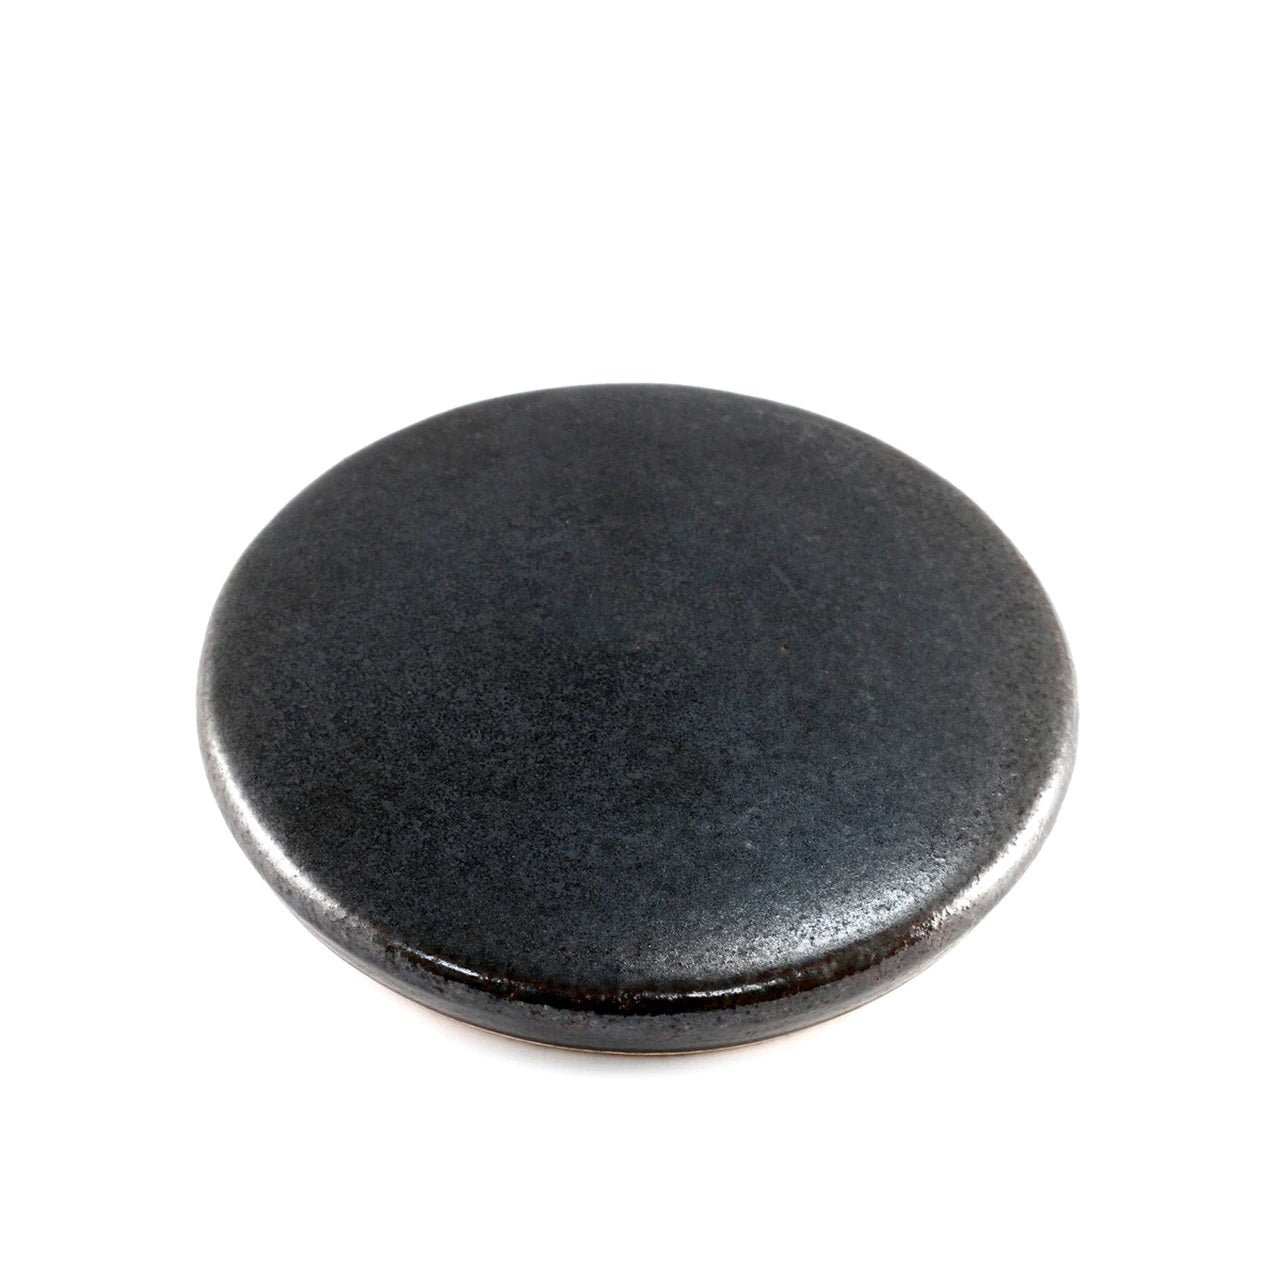 Ishiyaki Round Steak Stone (Small) - (SKU: 96346)